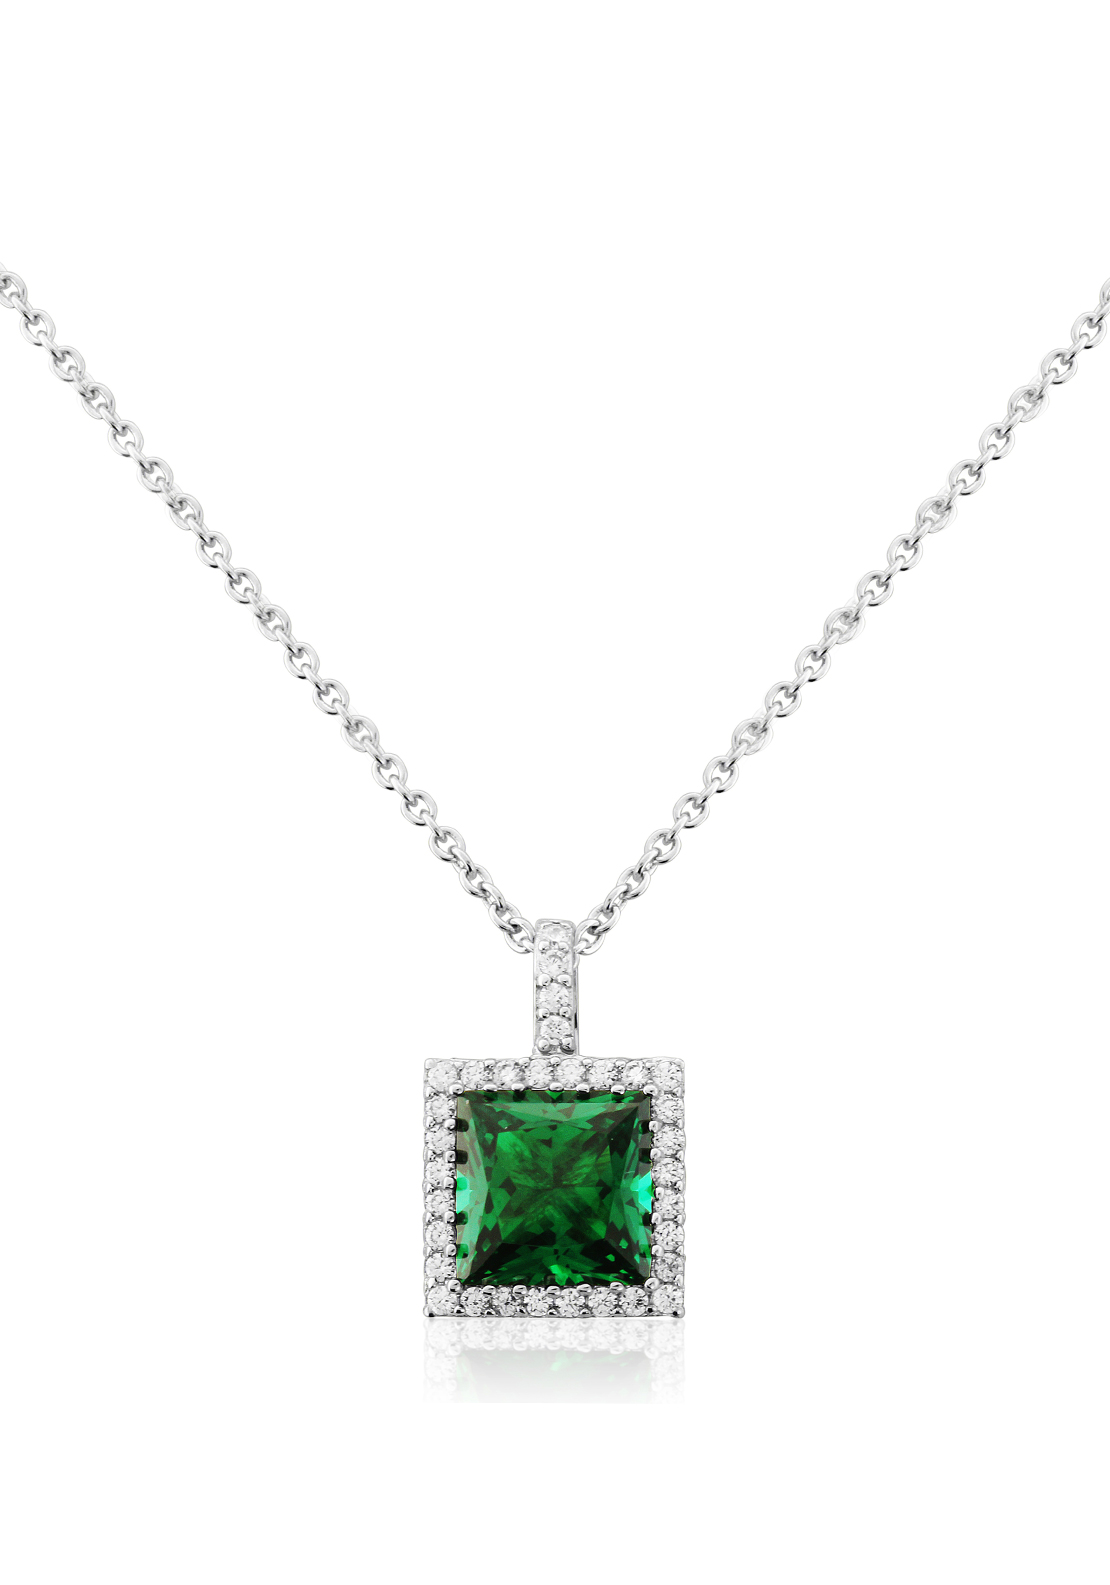 Waterford Crystal Square Faux Emerald and Pave Pendant Necklace, Silver